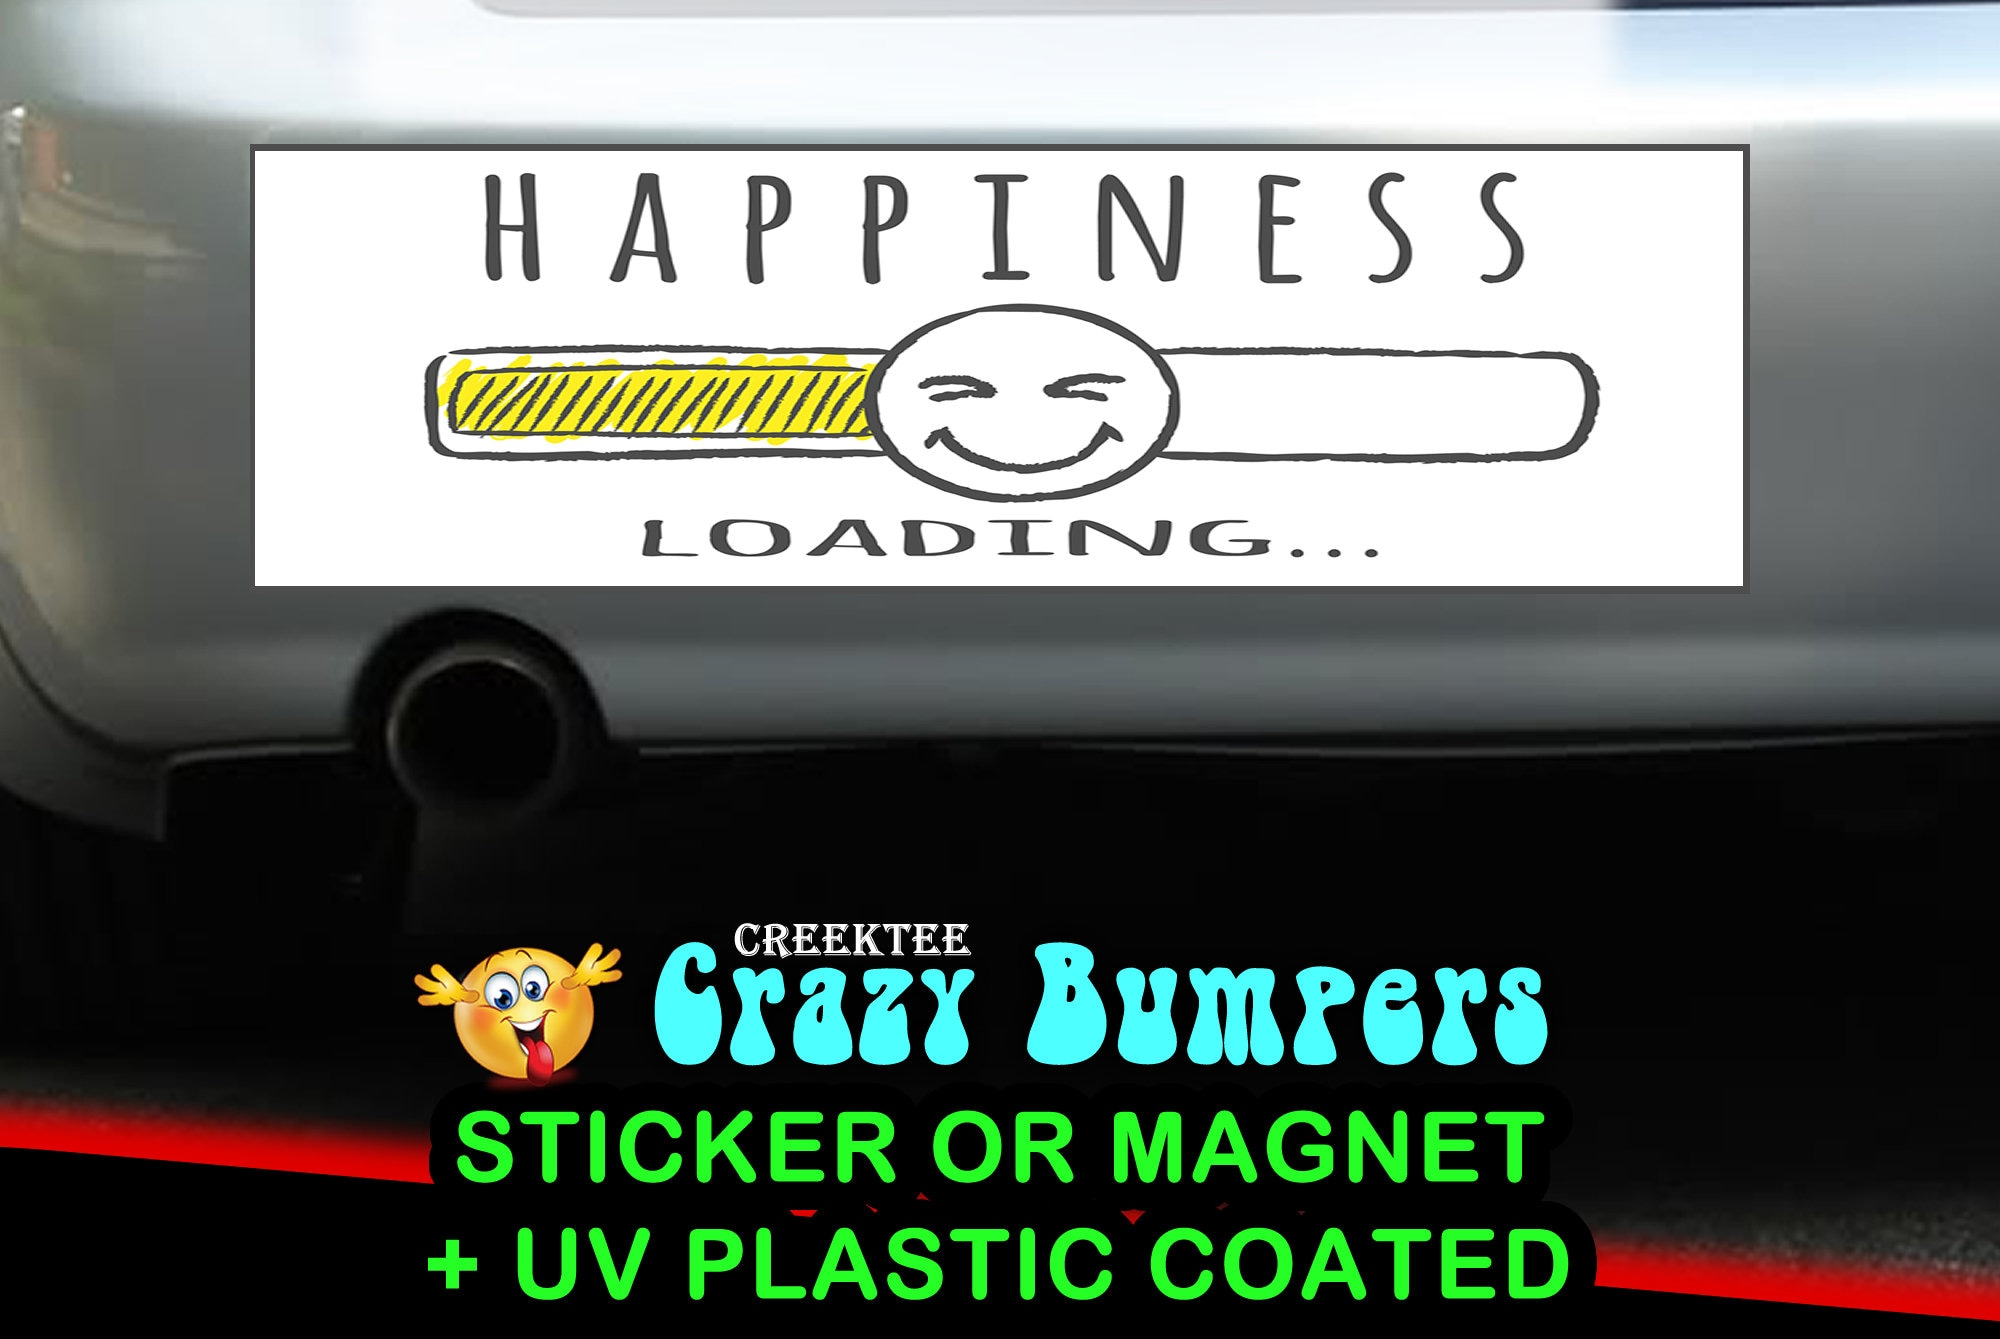 CAD$8.69 - Happiness Loading bumper sticker or magnet, 9 x 2.7 or 10 x 3 Sticker Magnet or bumper sticker or bumper magnet